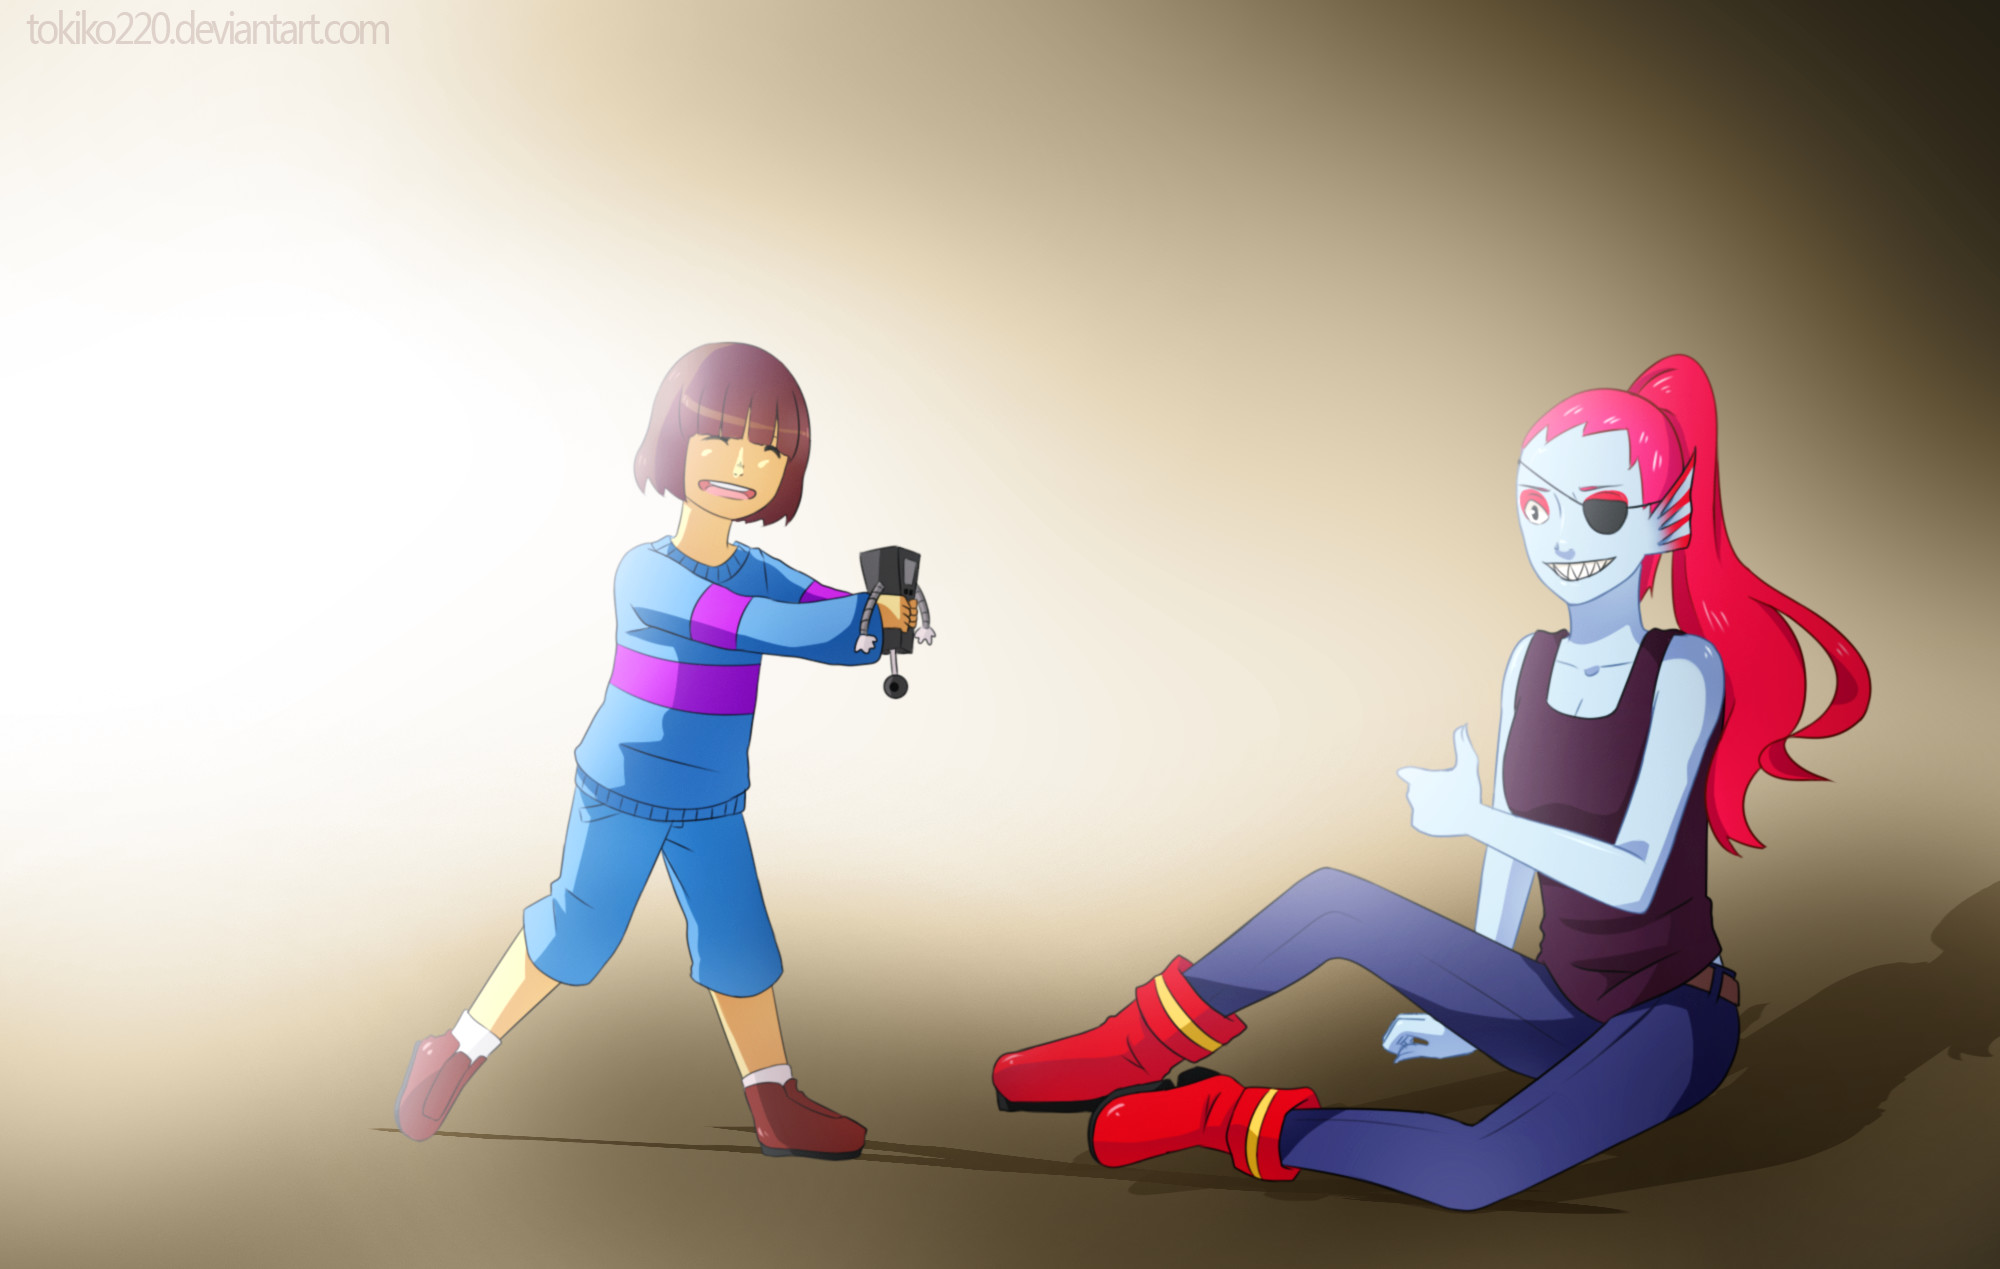 … UNDERTALE: Frisk and Undyne by Tokiko220